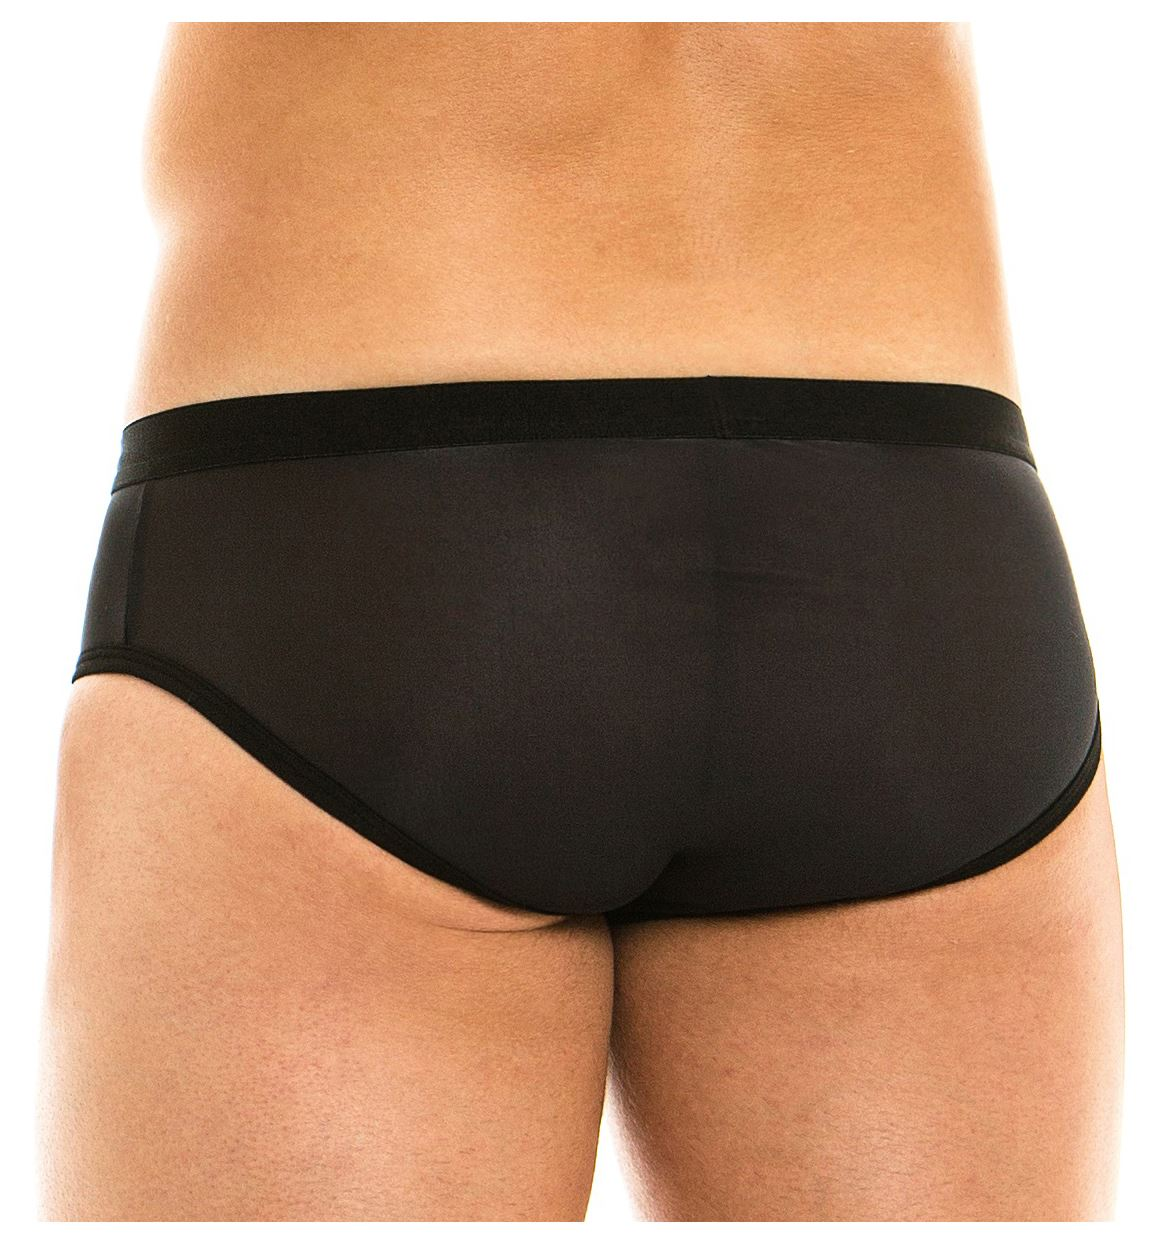 Modus Vivendi C-Through Brief men/'s underwear slip male bikini silky see through